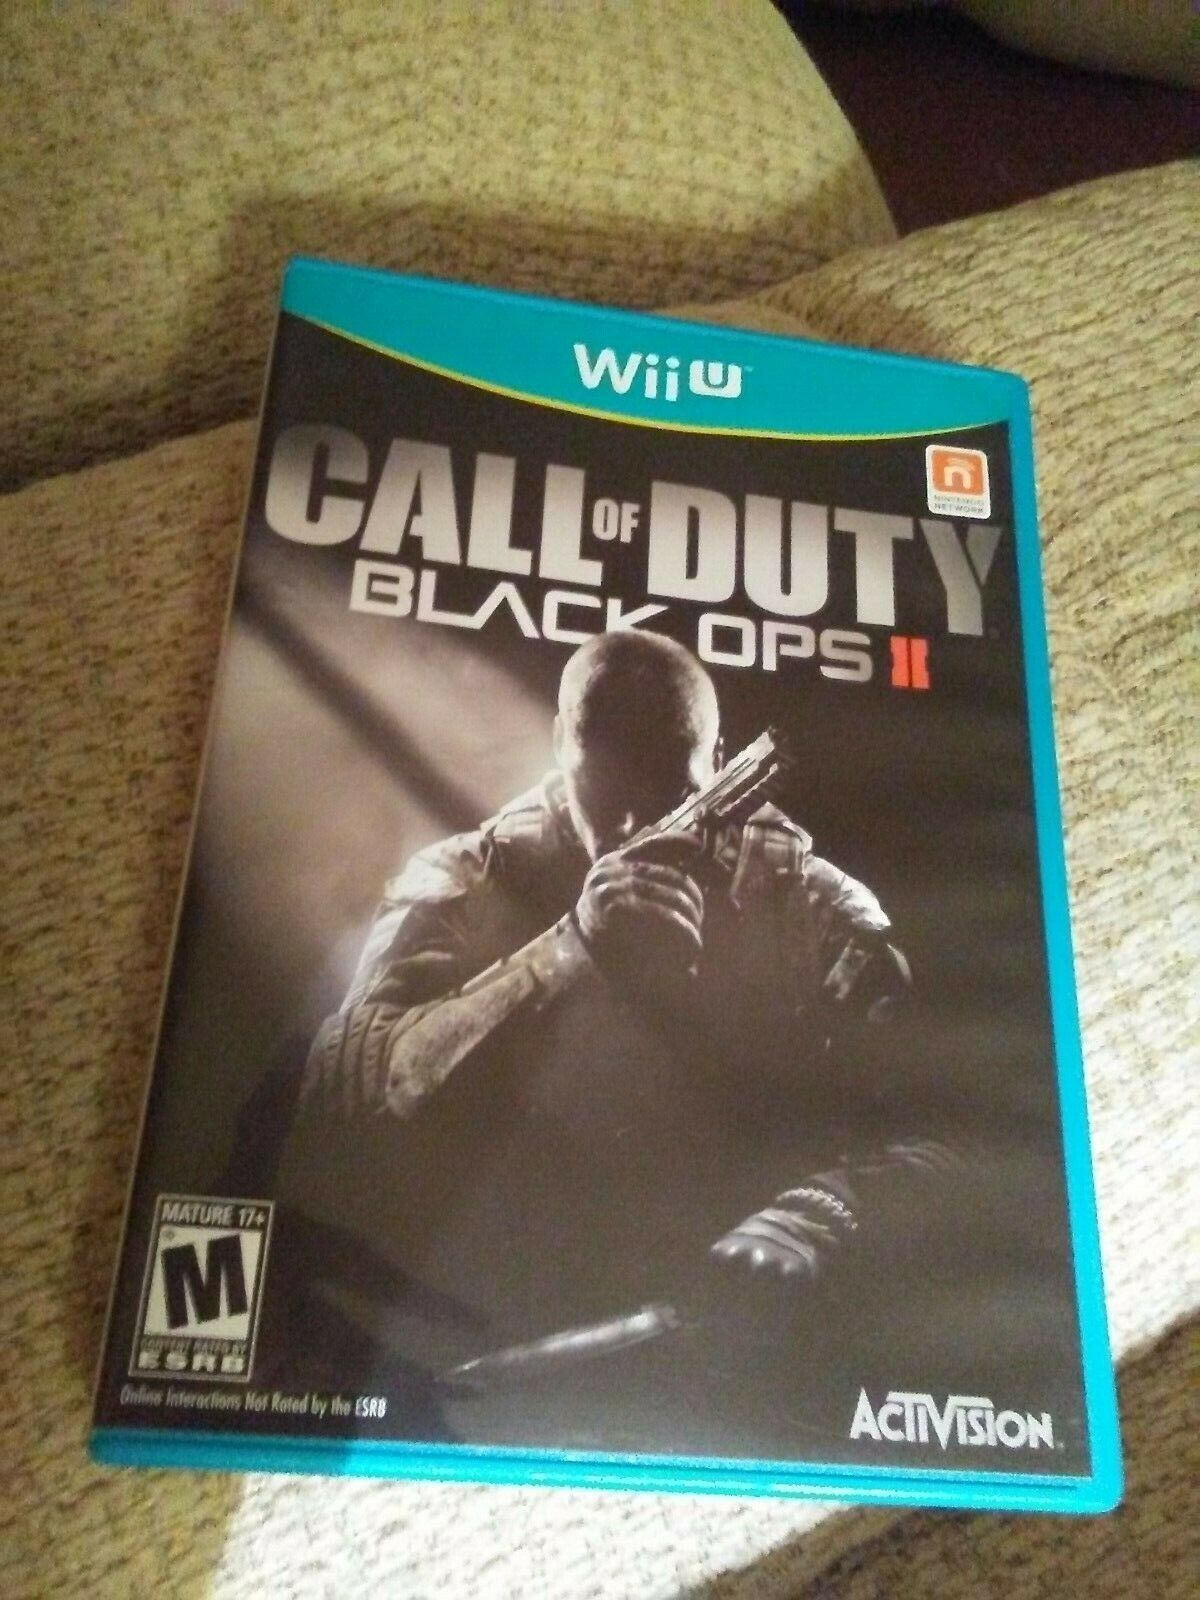 Primary image for Call of Duty: Black Ops II (Nintendo Wii U, 2012)